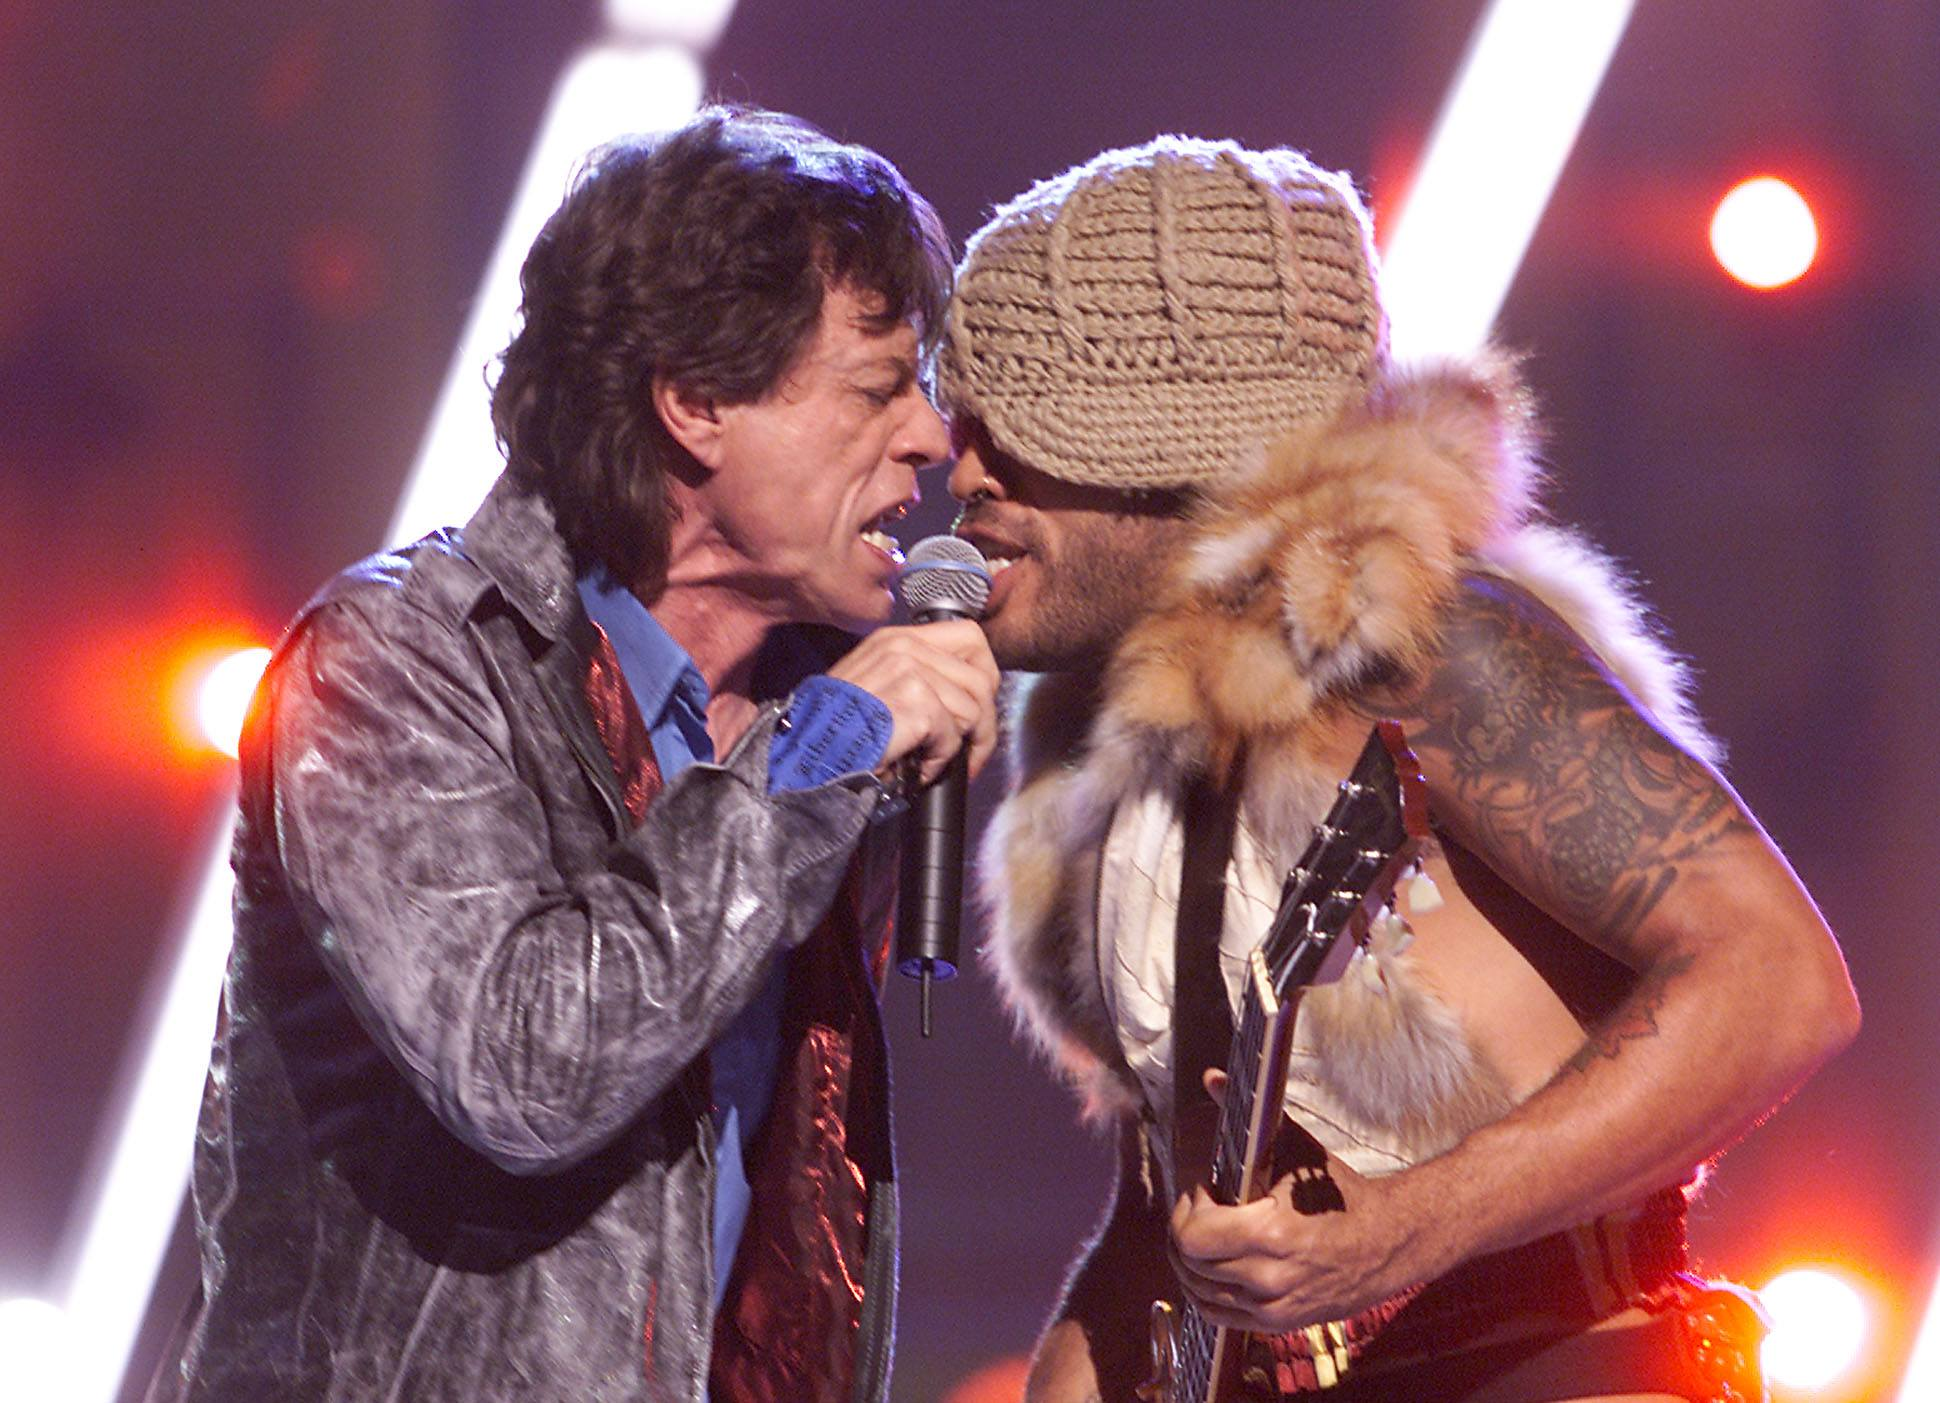 Mick Jagger and Lenny Kravitz perform in 2001